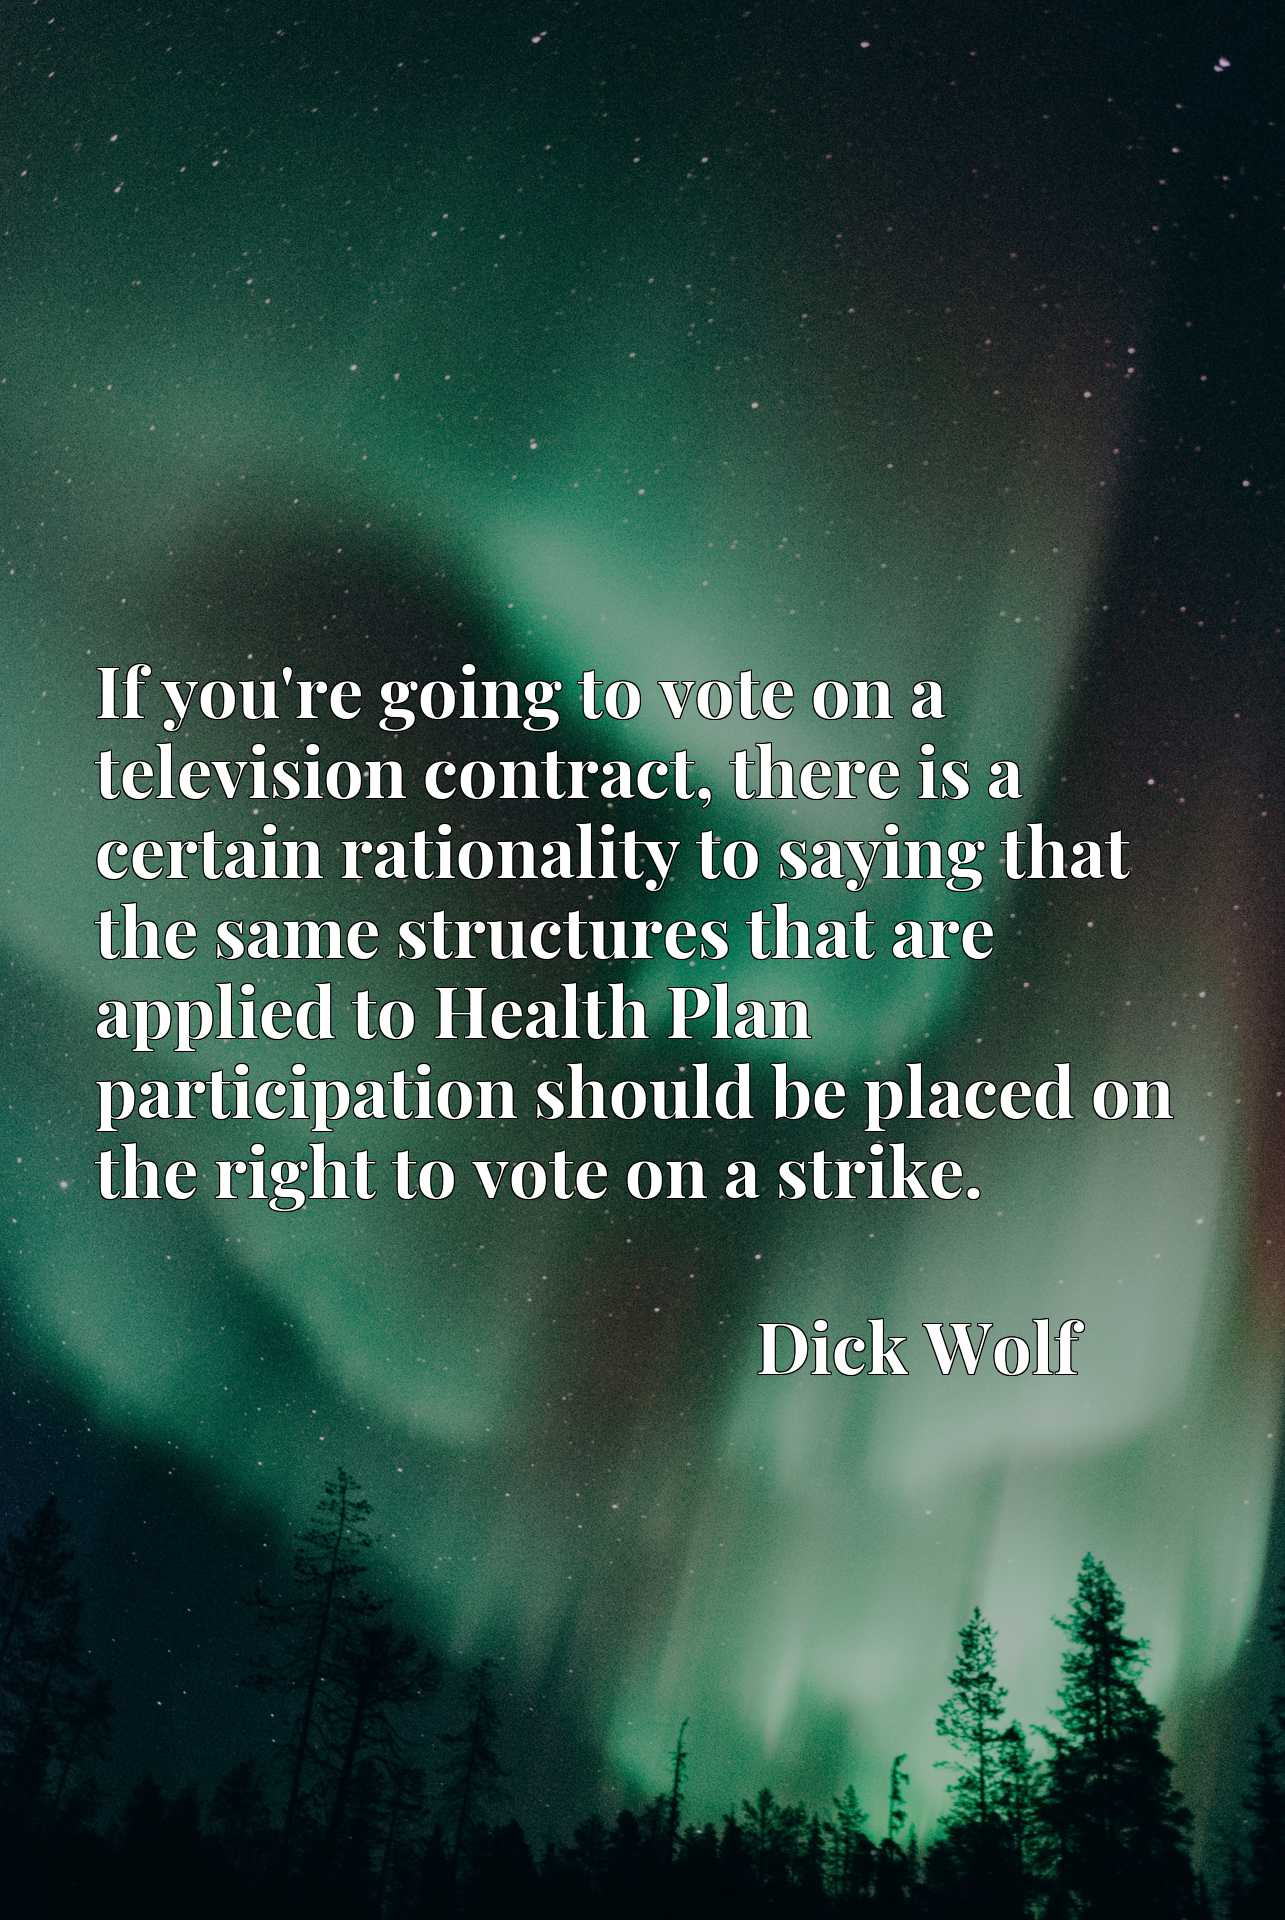 If you're going to vote on a television contract, there is a certain rationality to saying that the same structures that are applied to Health Plan participation should be placed on the right to vote on a strike.